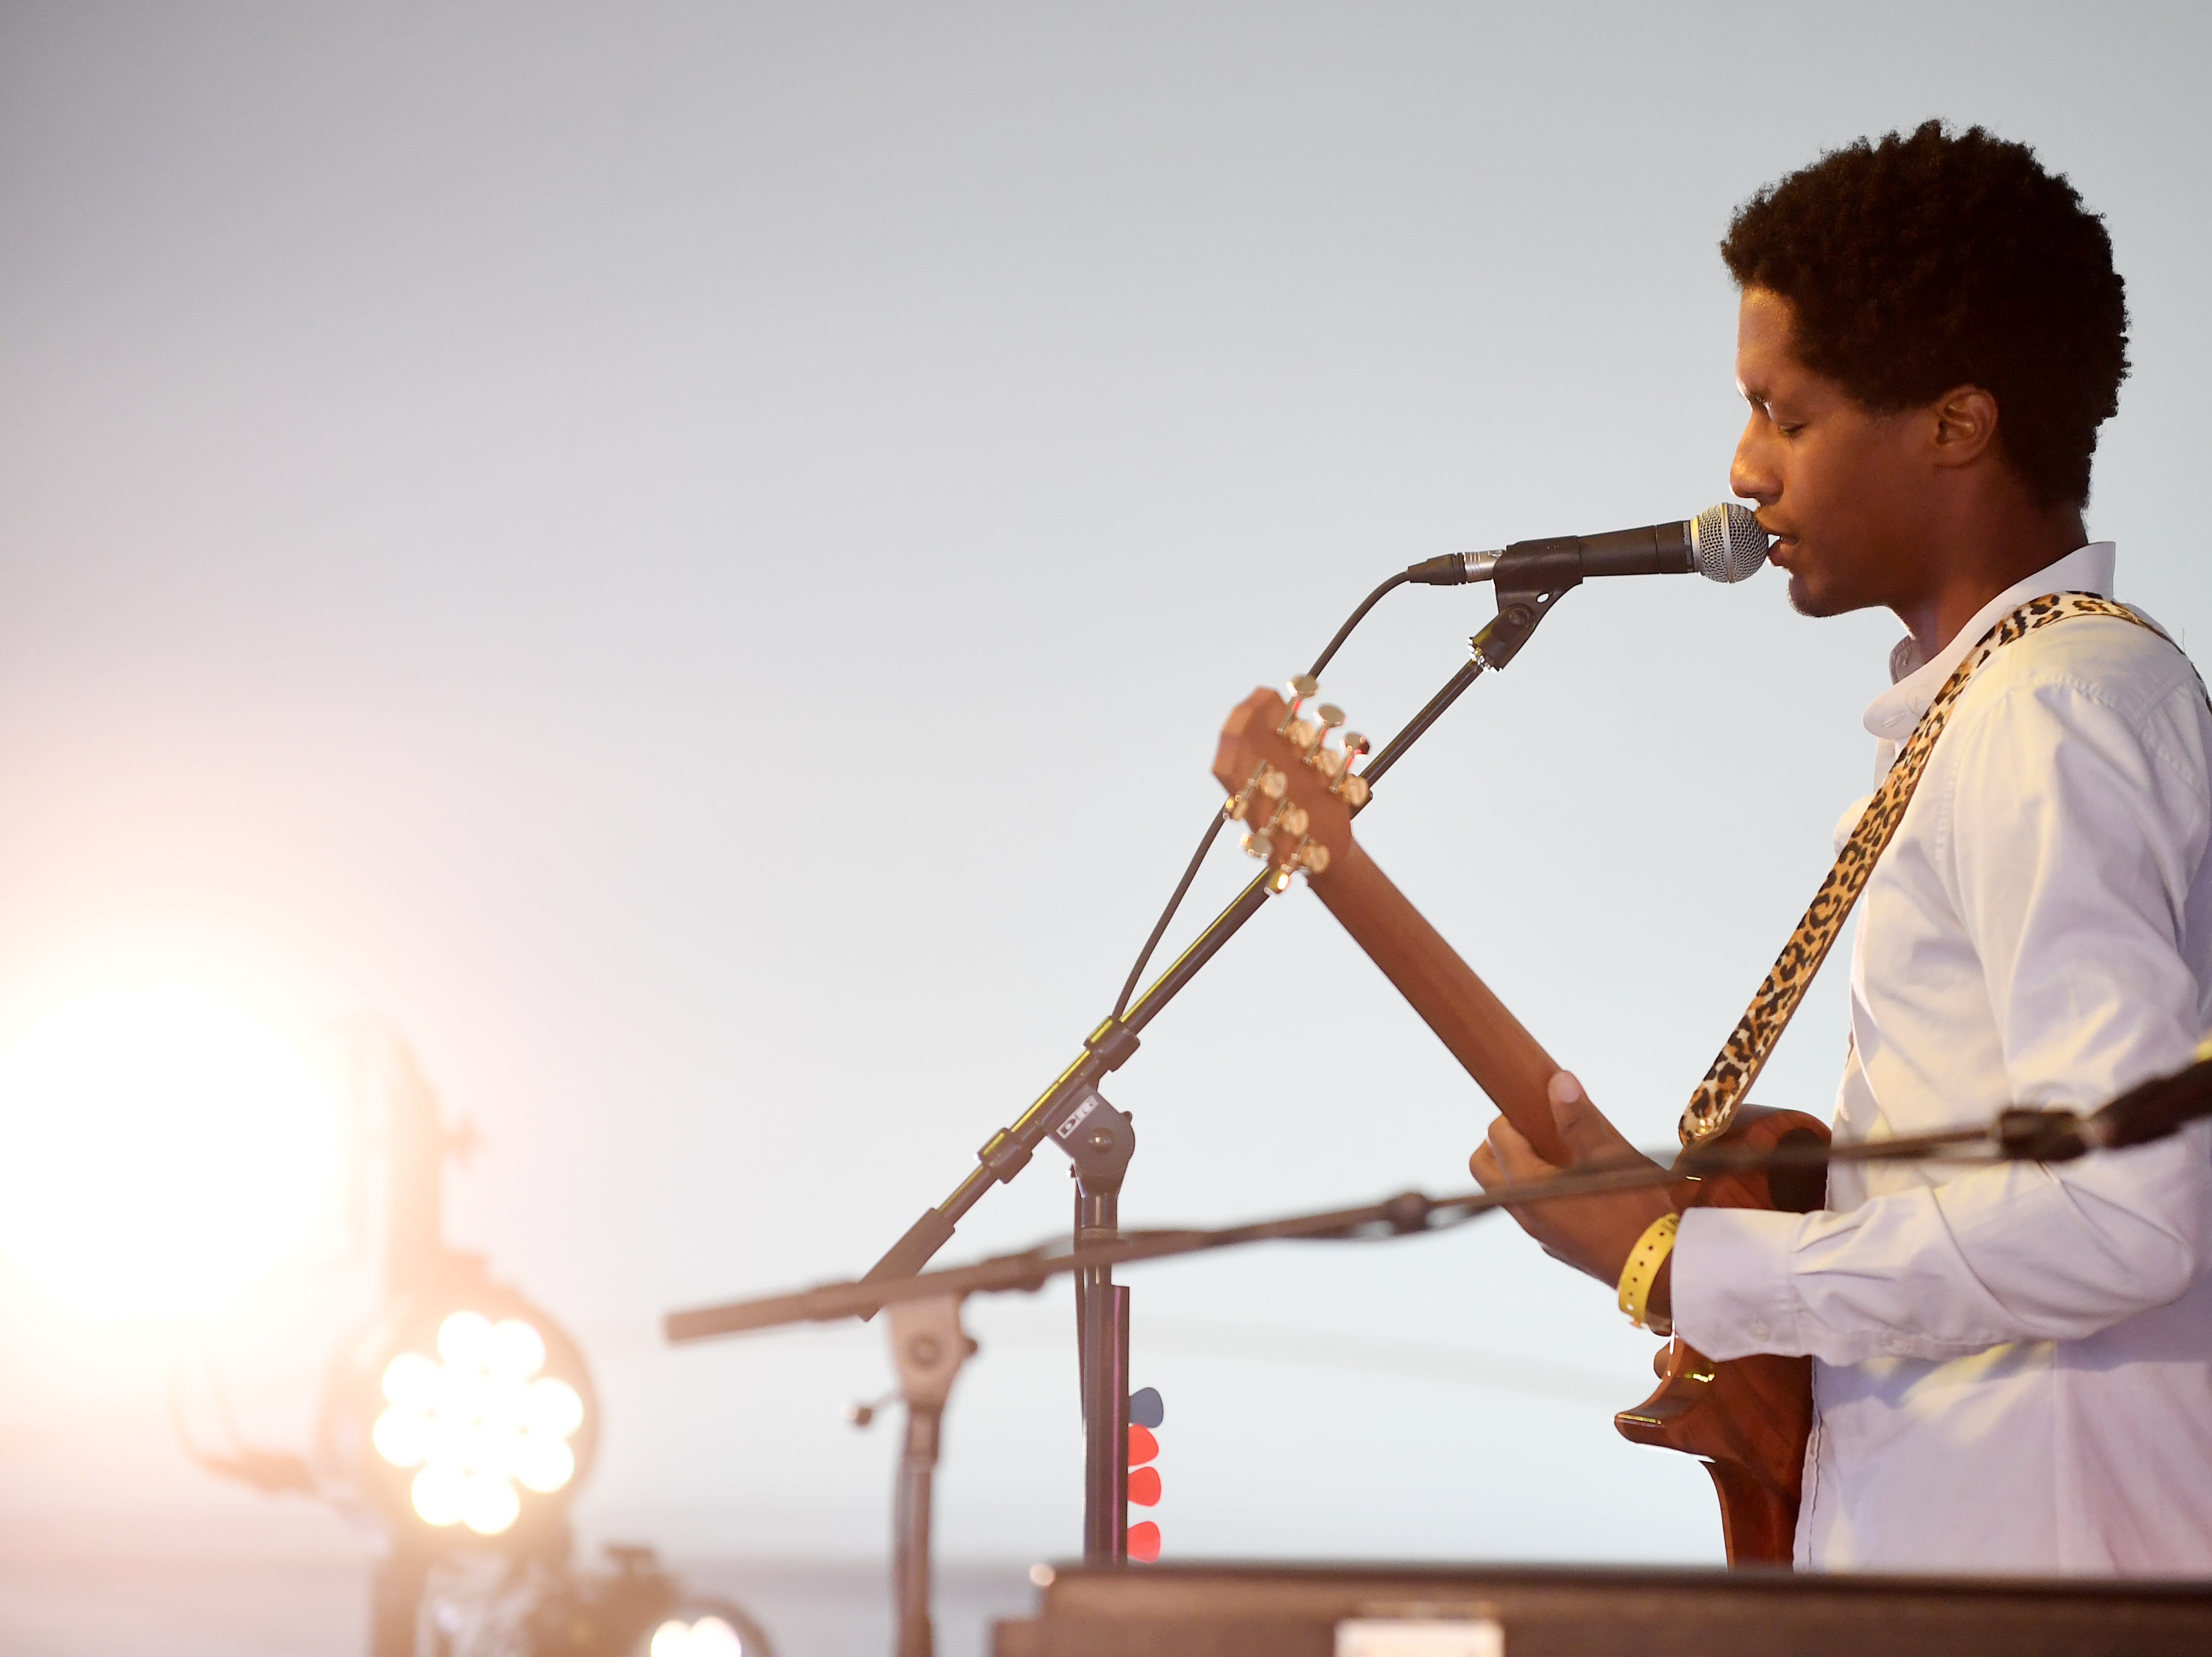 Ron Artis II performs at the 47th LEAF Festival at Lake Eden in Black Mountain Oct. 20, 2018.